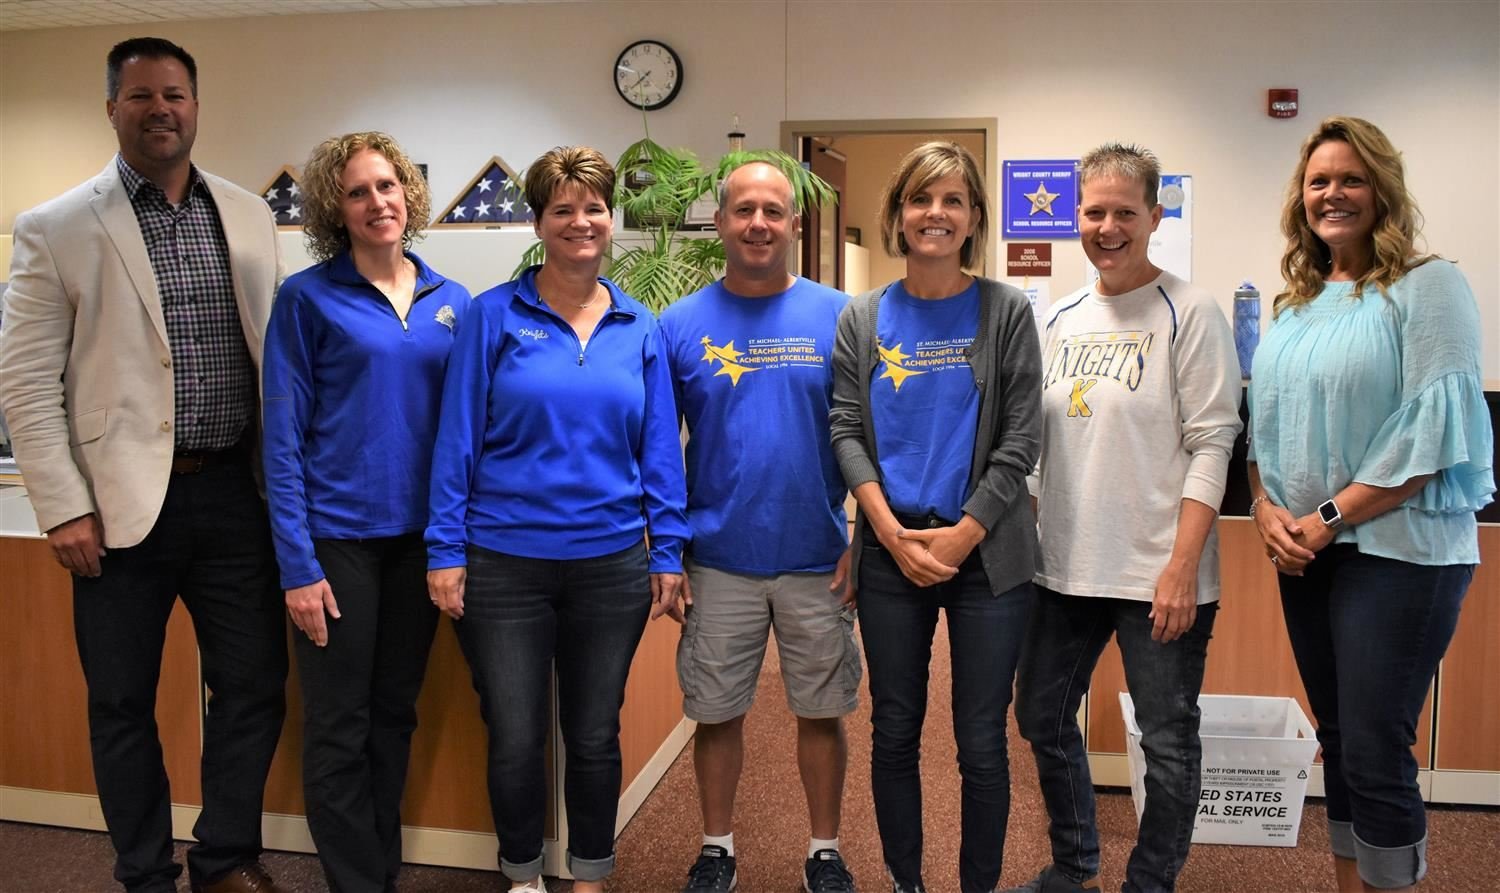 STMA Honors Staff with 30 Years of Service